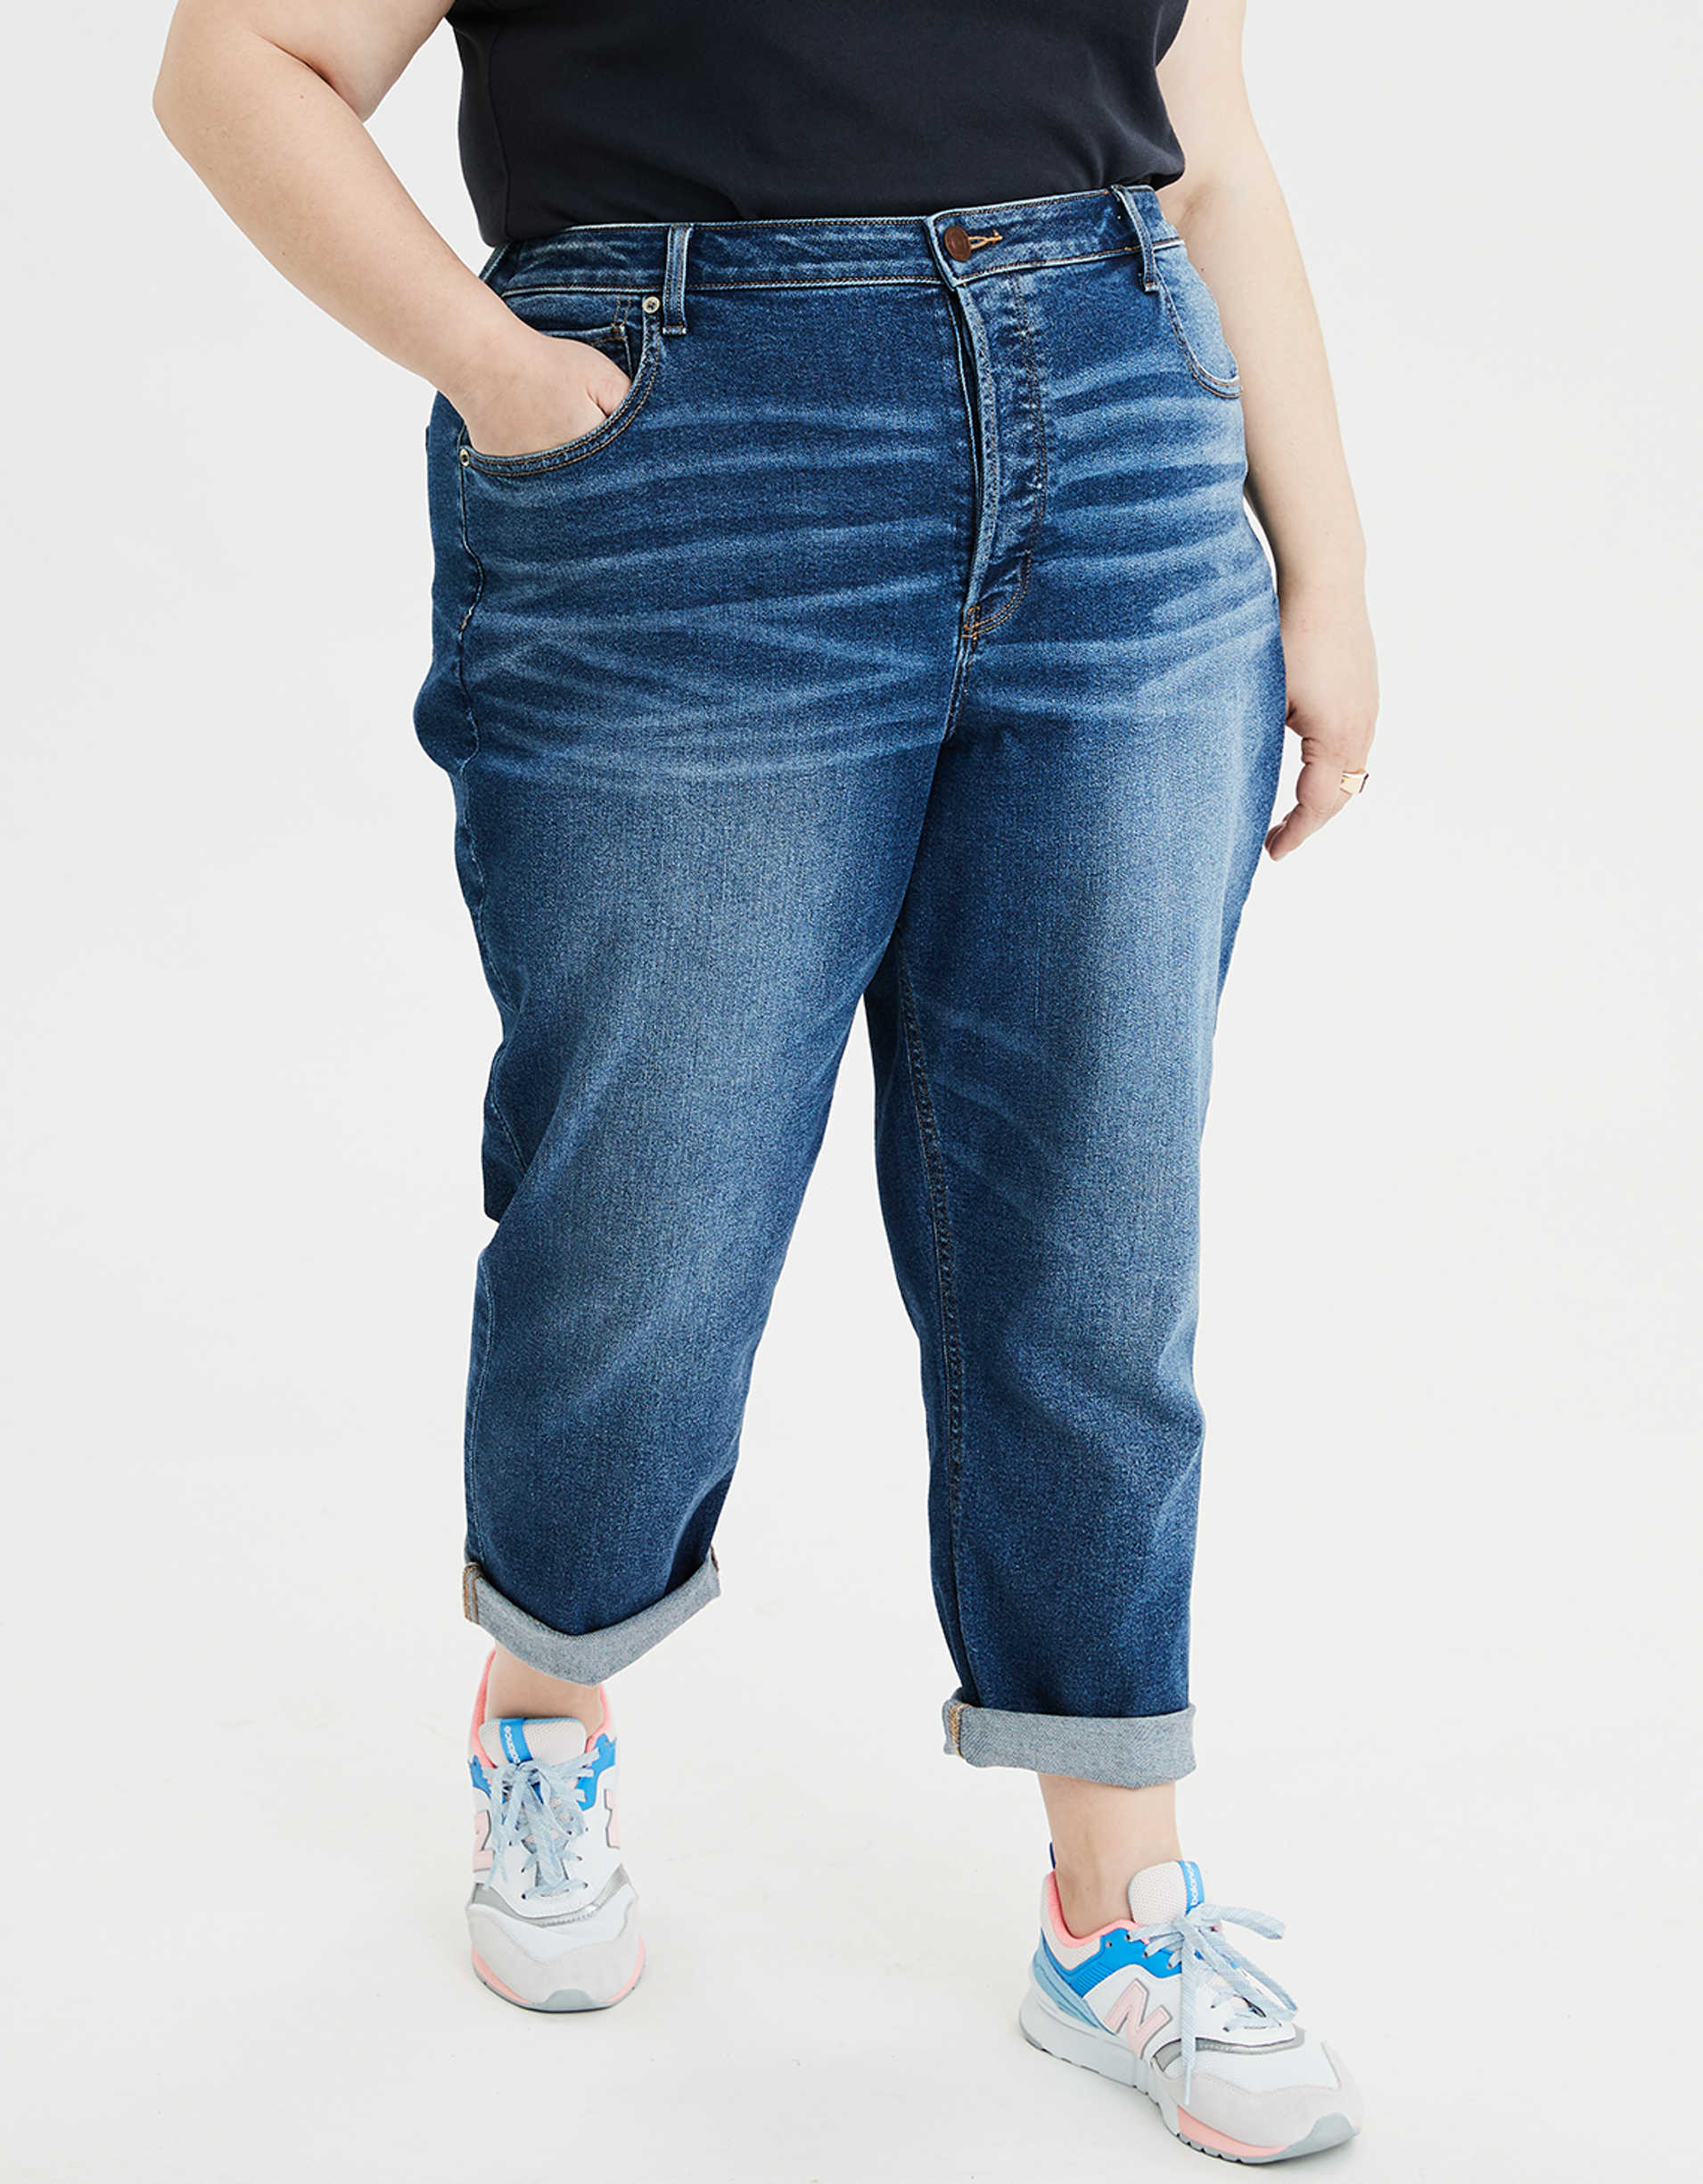 Stretch High-Waisted Tomgirl Jean